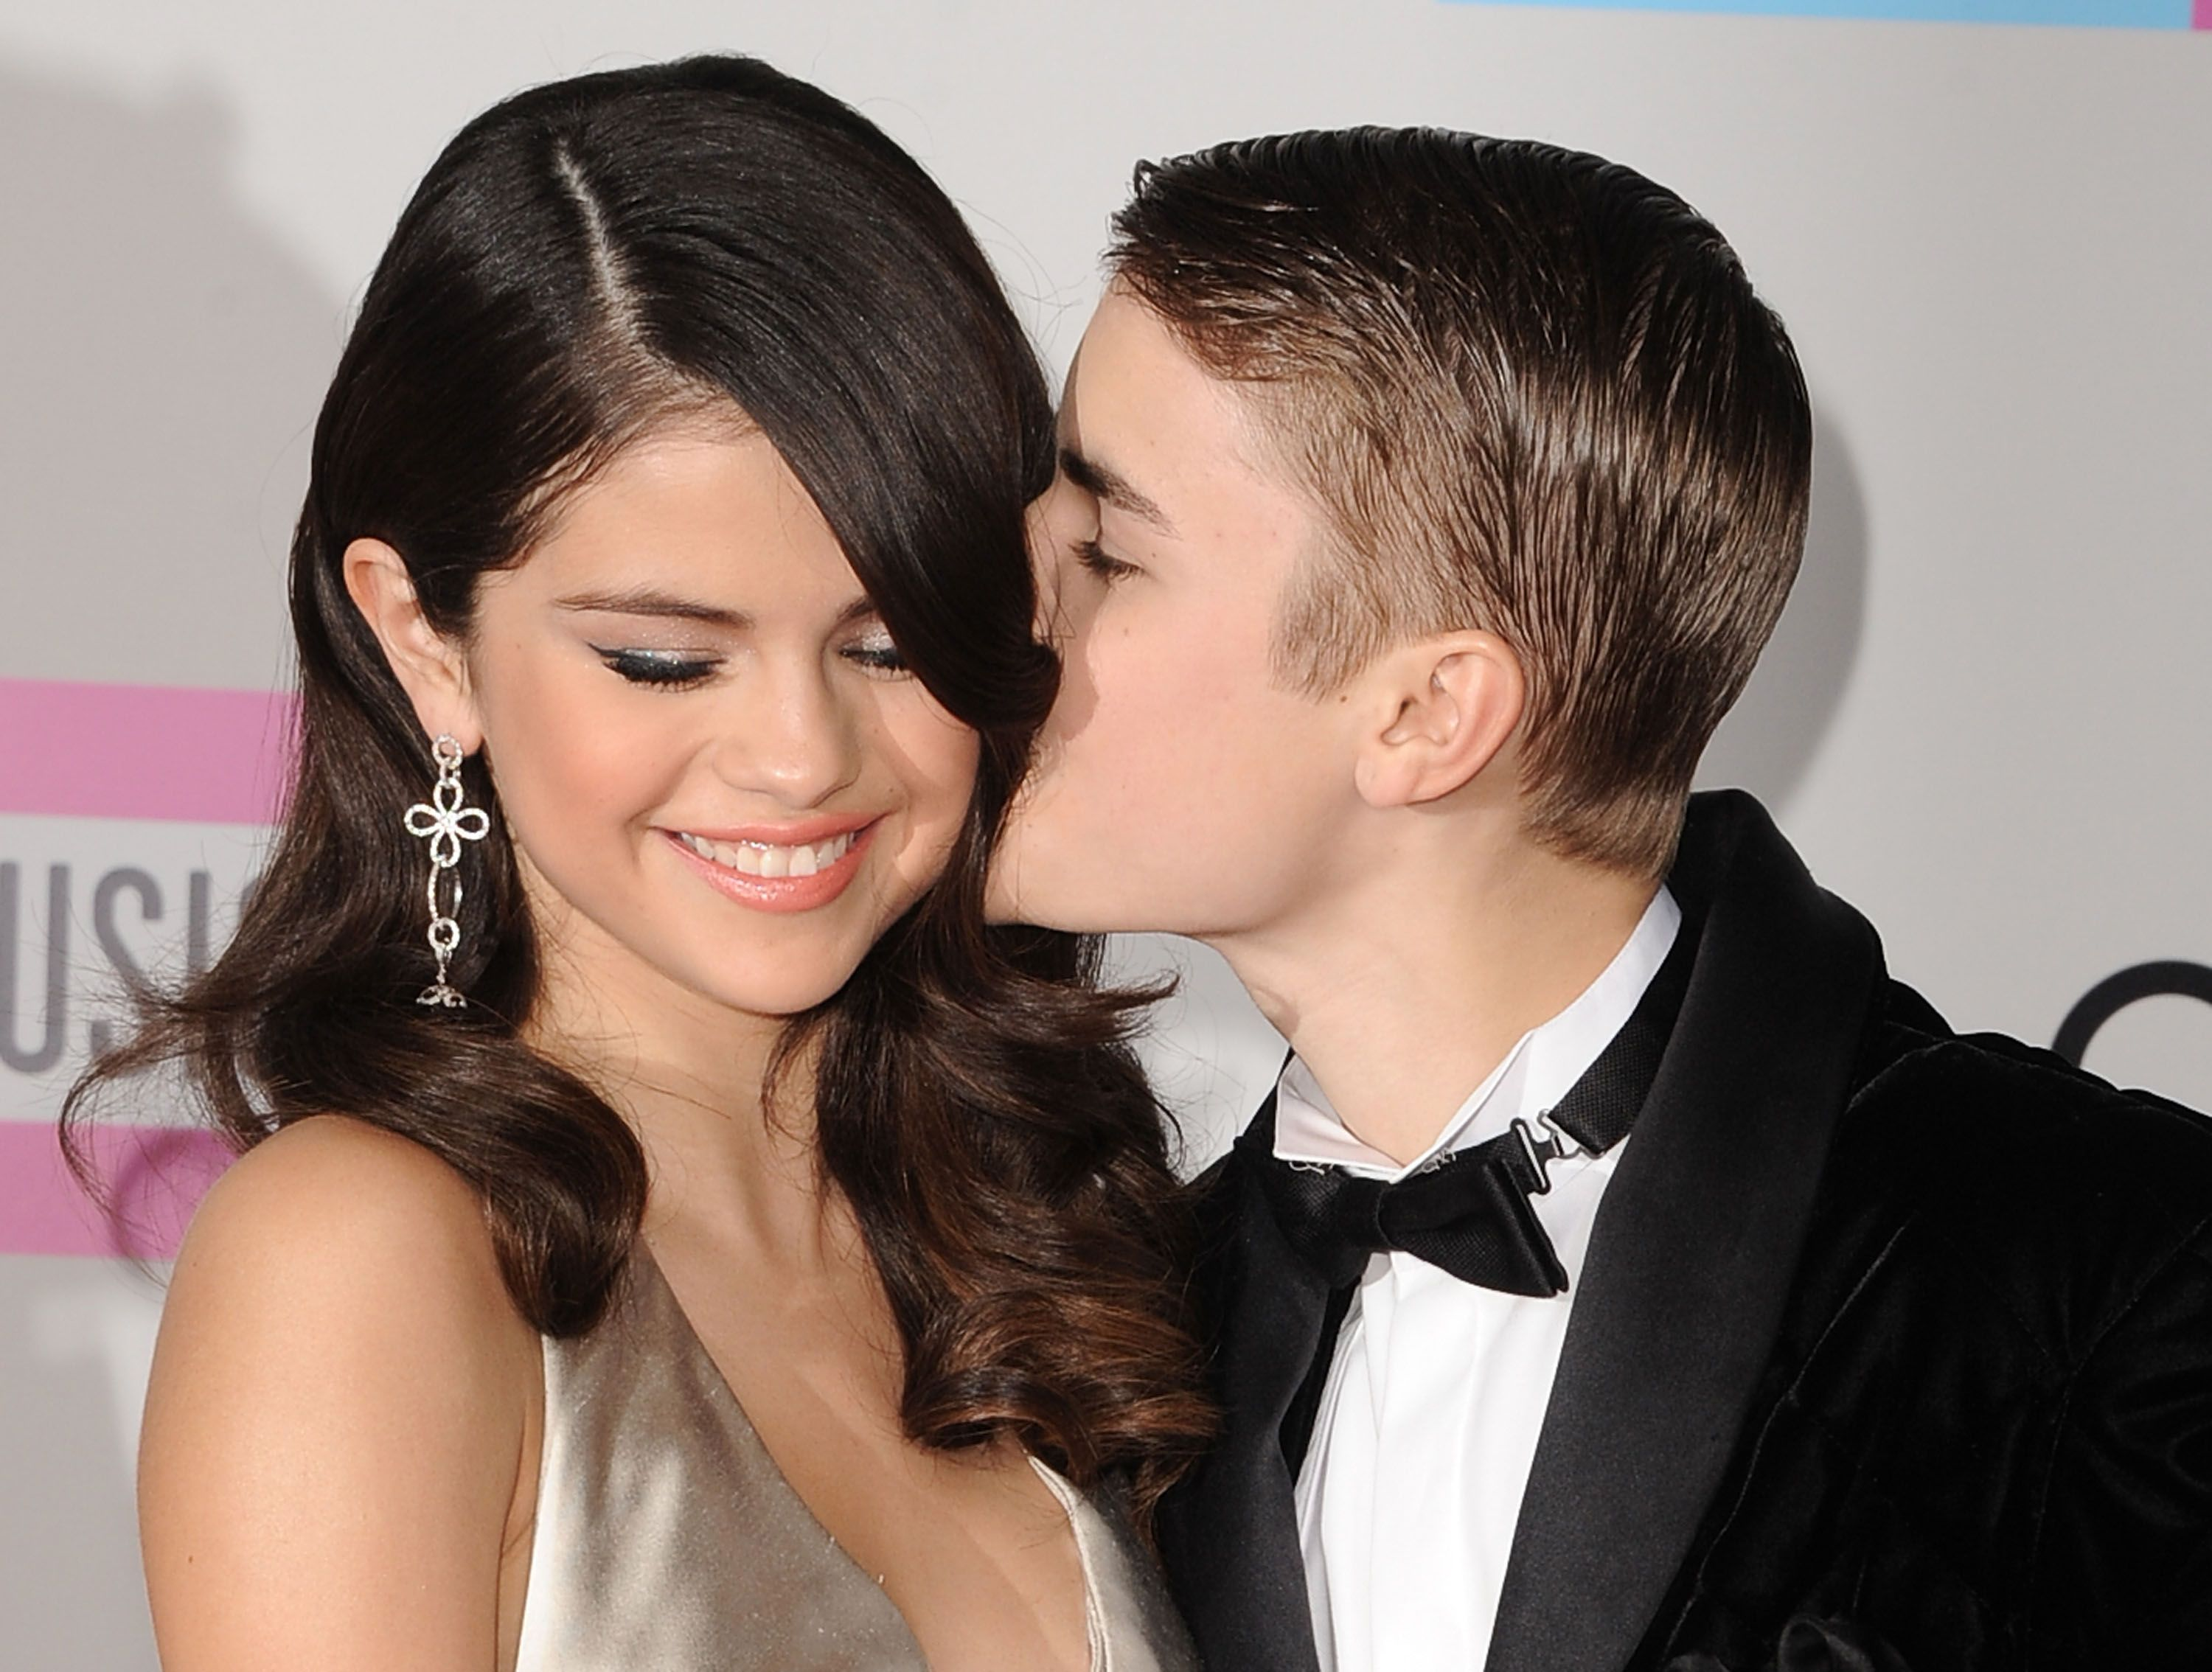 Who is selena gomez dating right now 2019